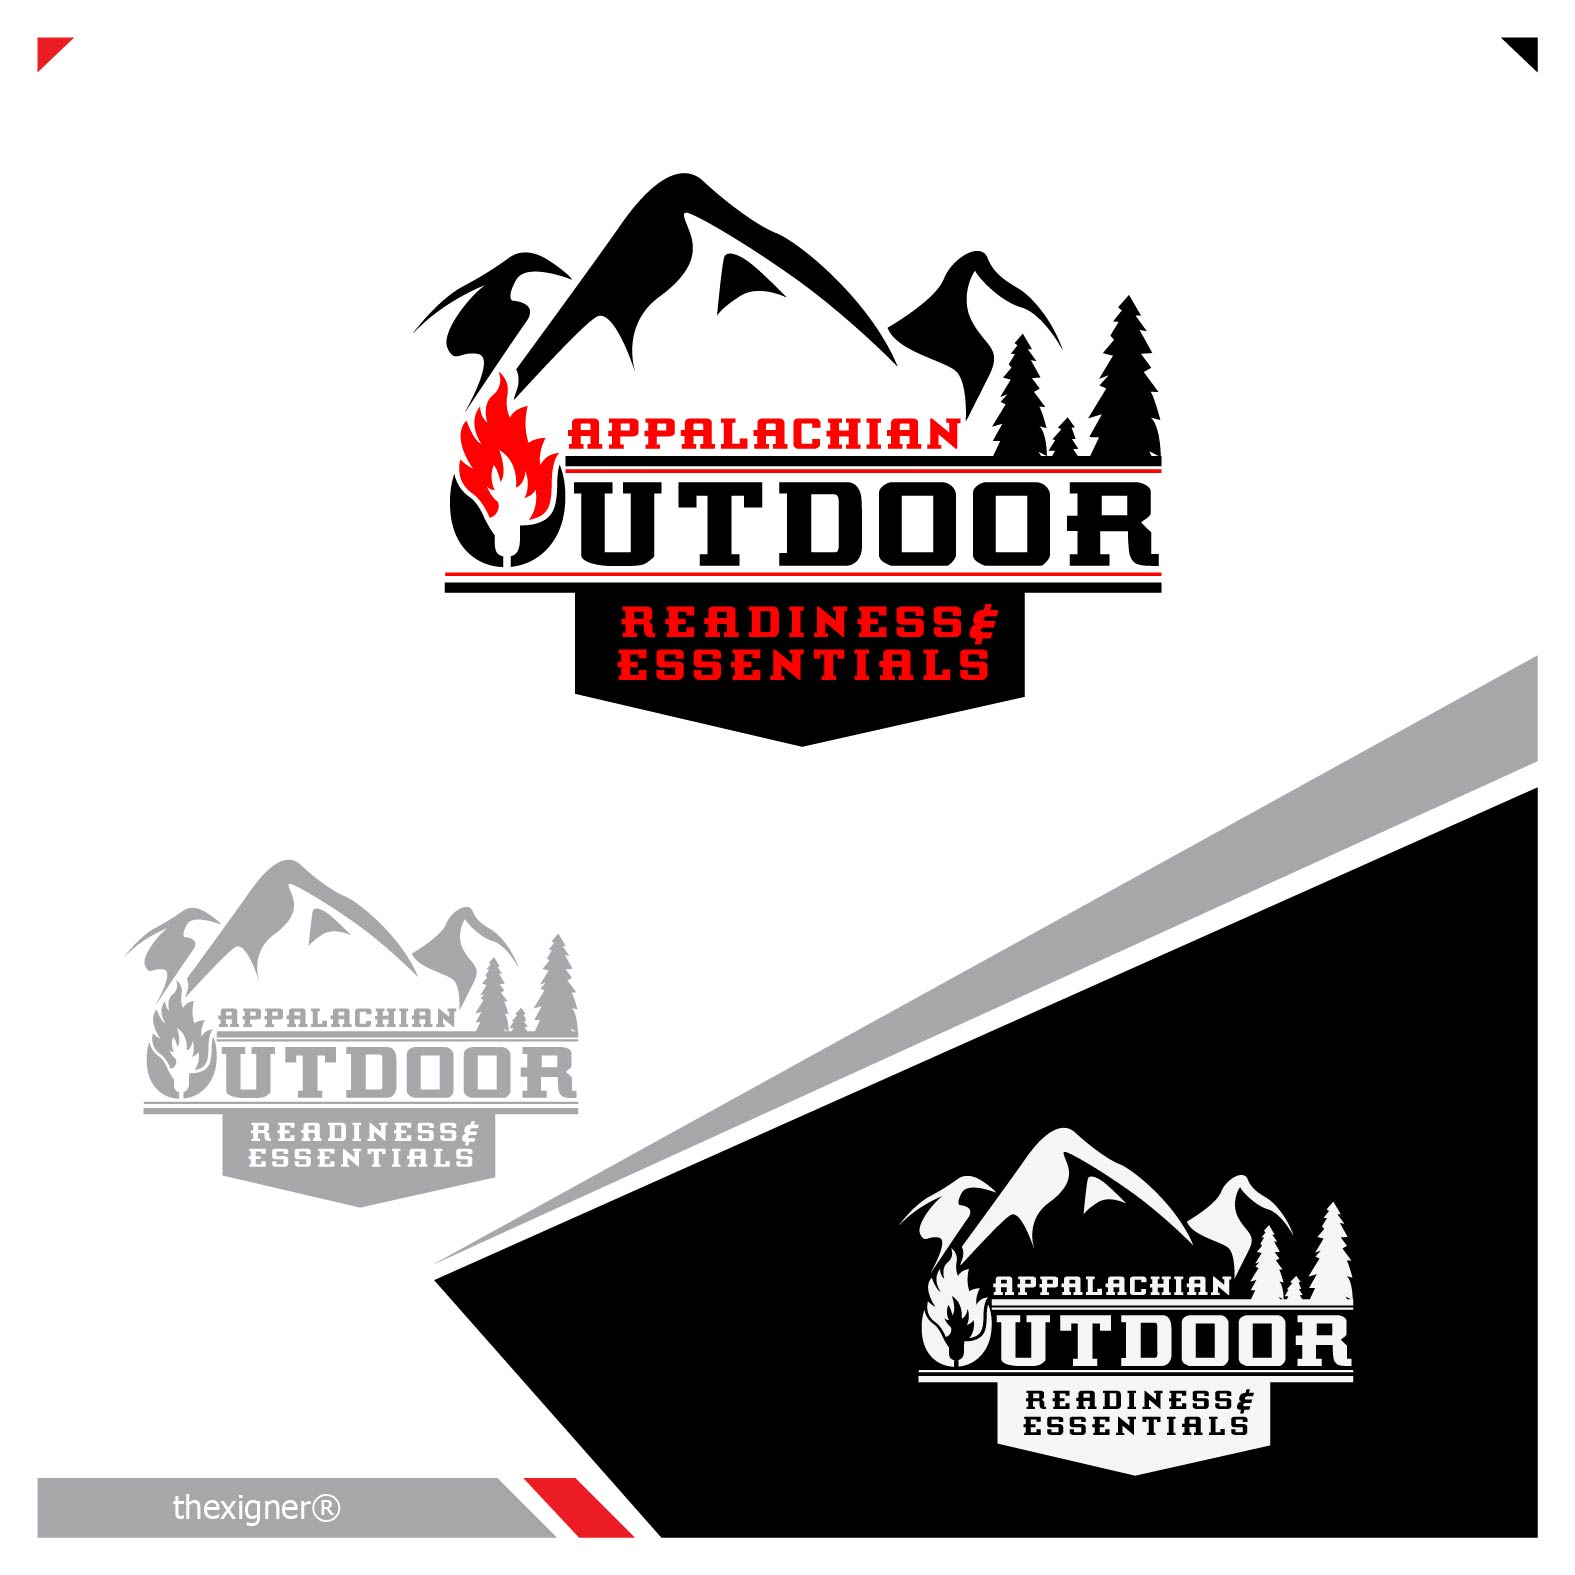 https://s3.amazonaws.com/htw/dt-contest-entries/92879/united-states-retail-outdoors-Readiness-Camping-gear-Emergency-preparedness-Survival-logo-design.png